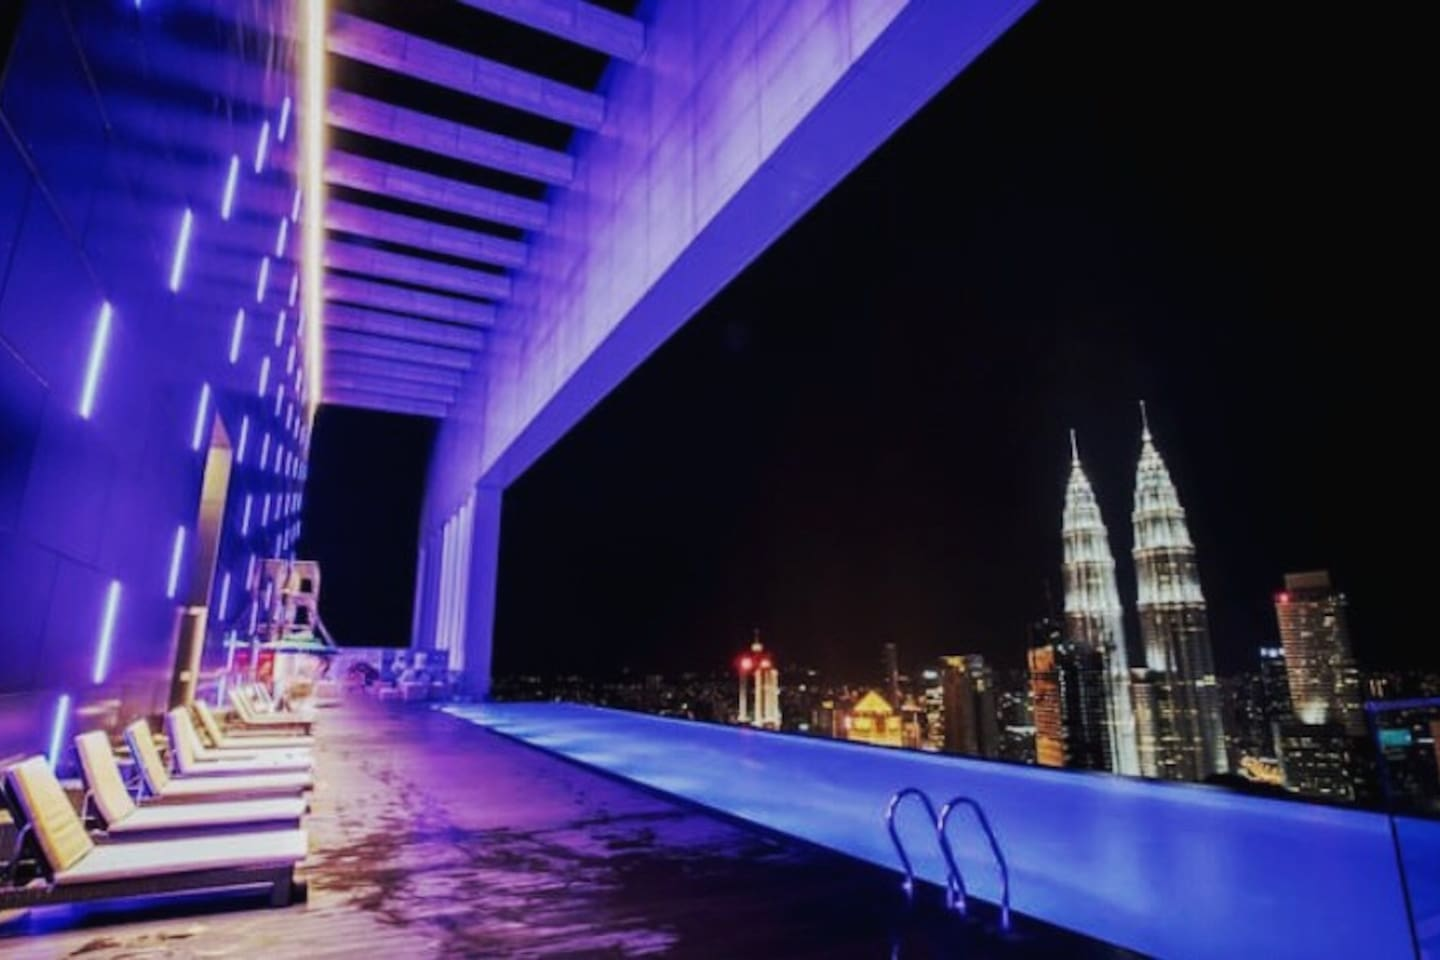 Sky deck infinity pool - Free access for all guests